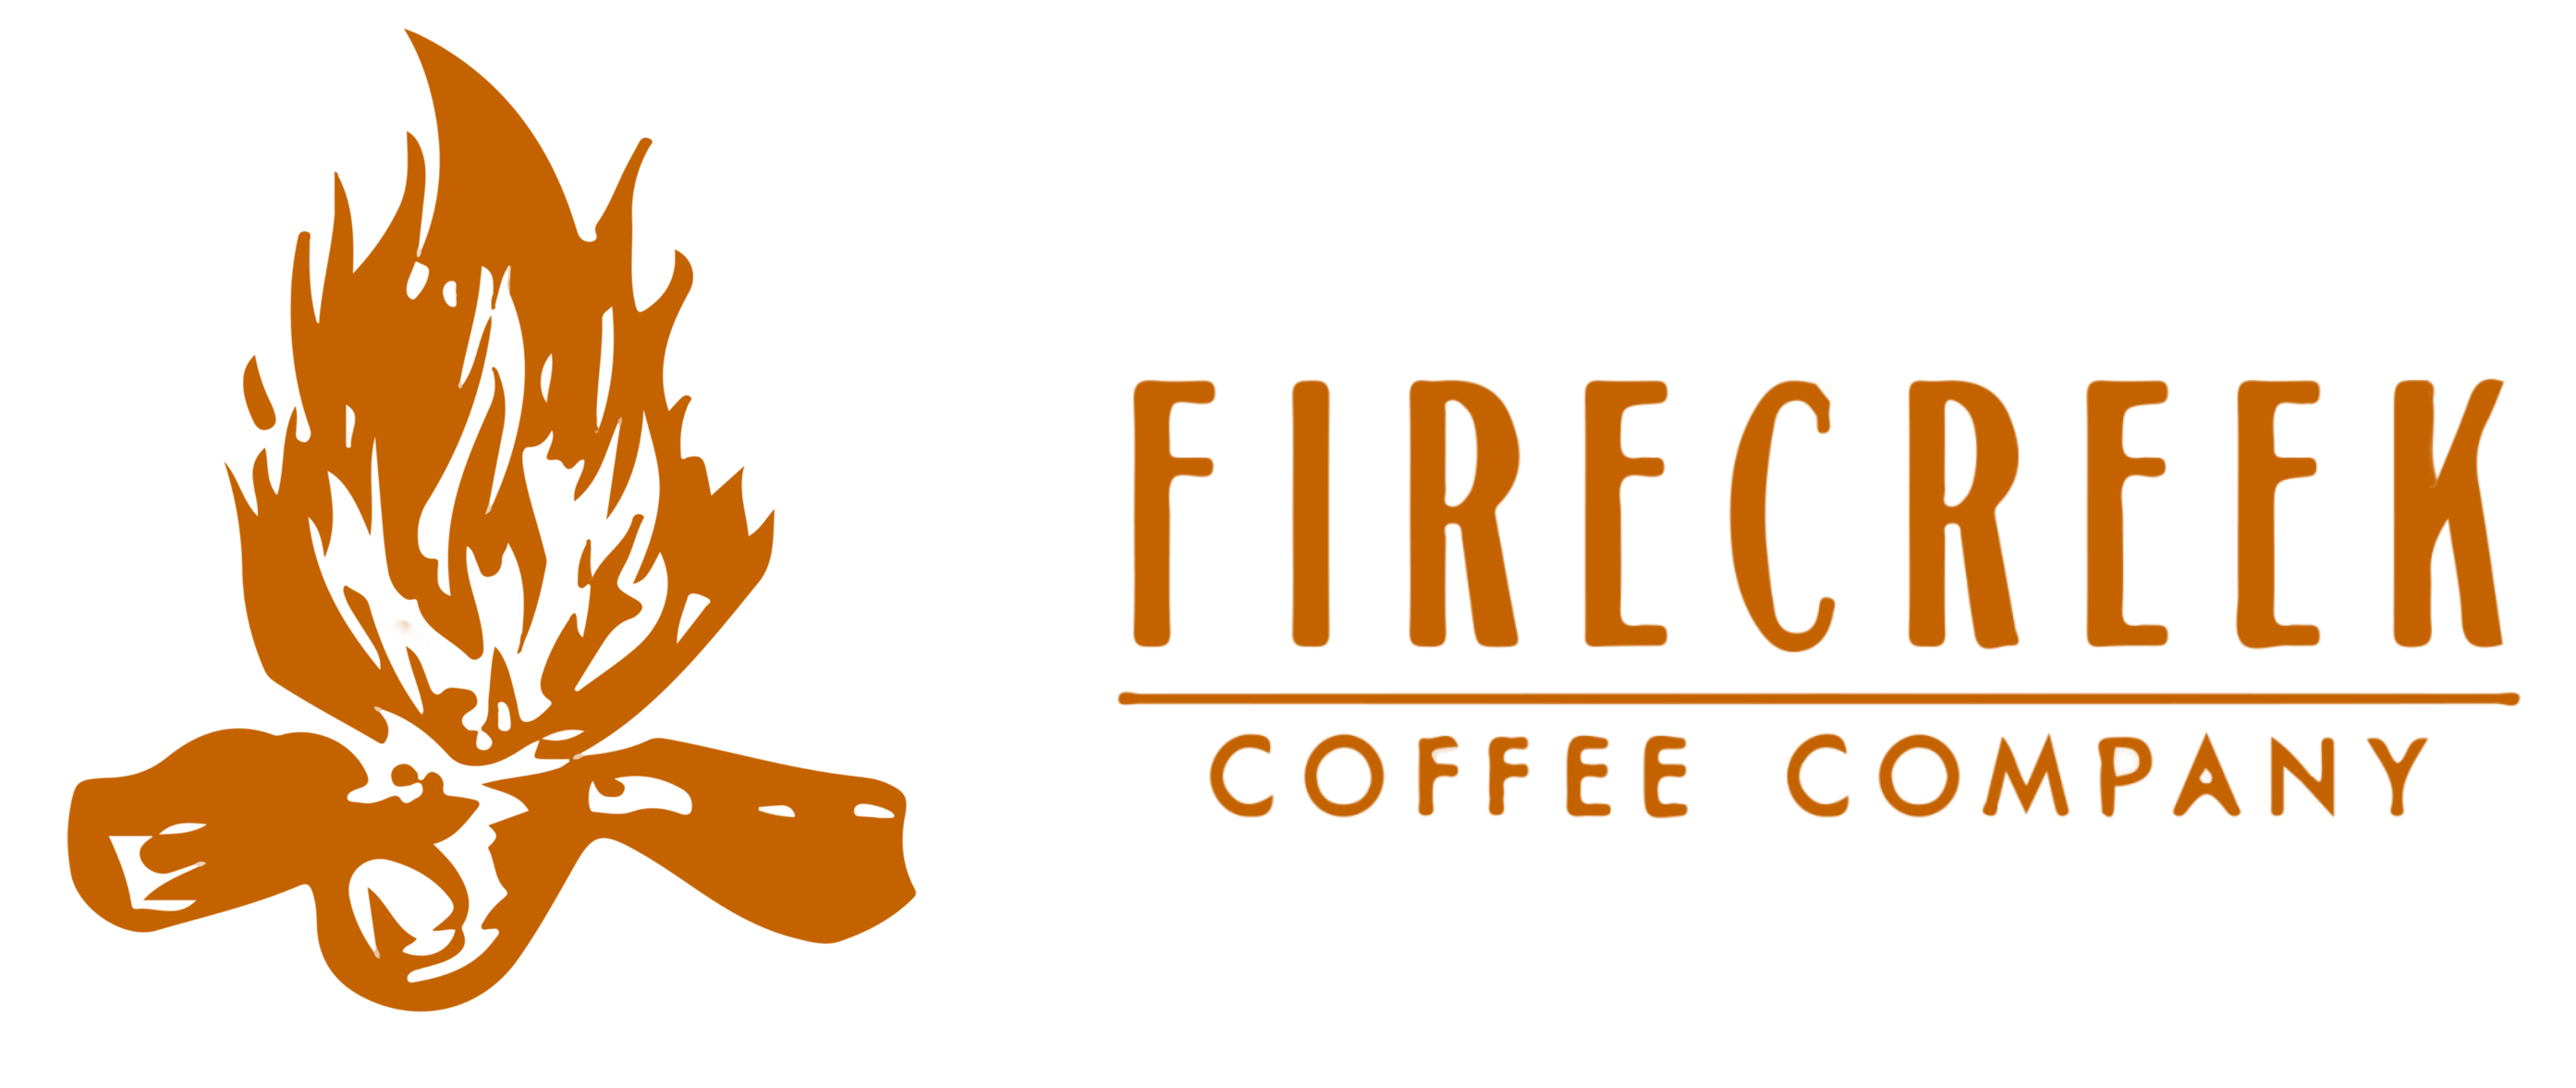 FIRECREEK COFFEE CO.